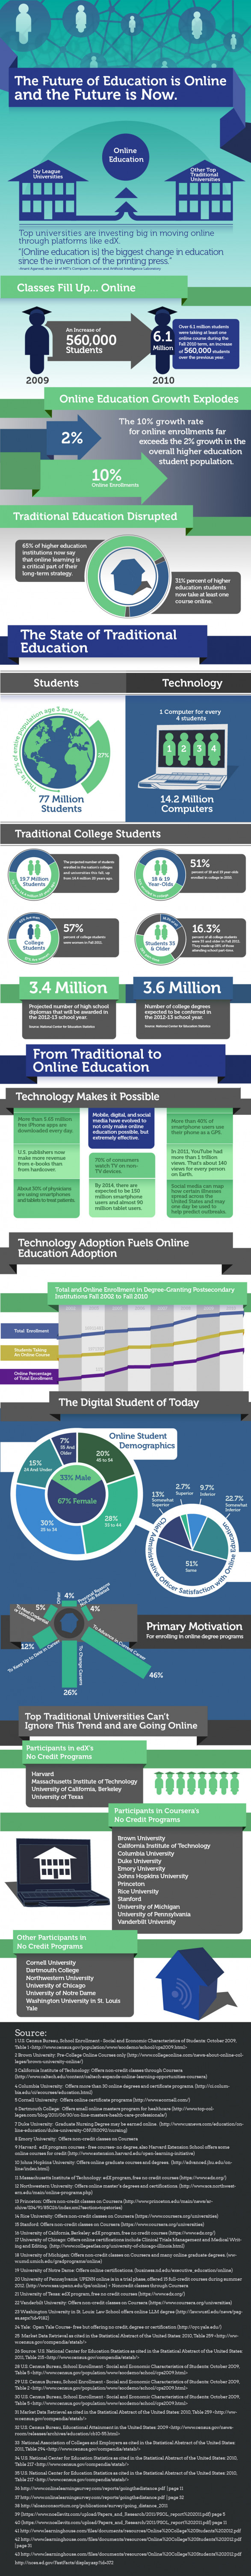 The Future of Education is Online and the Future is Now